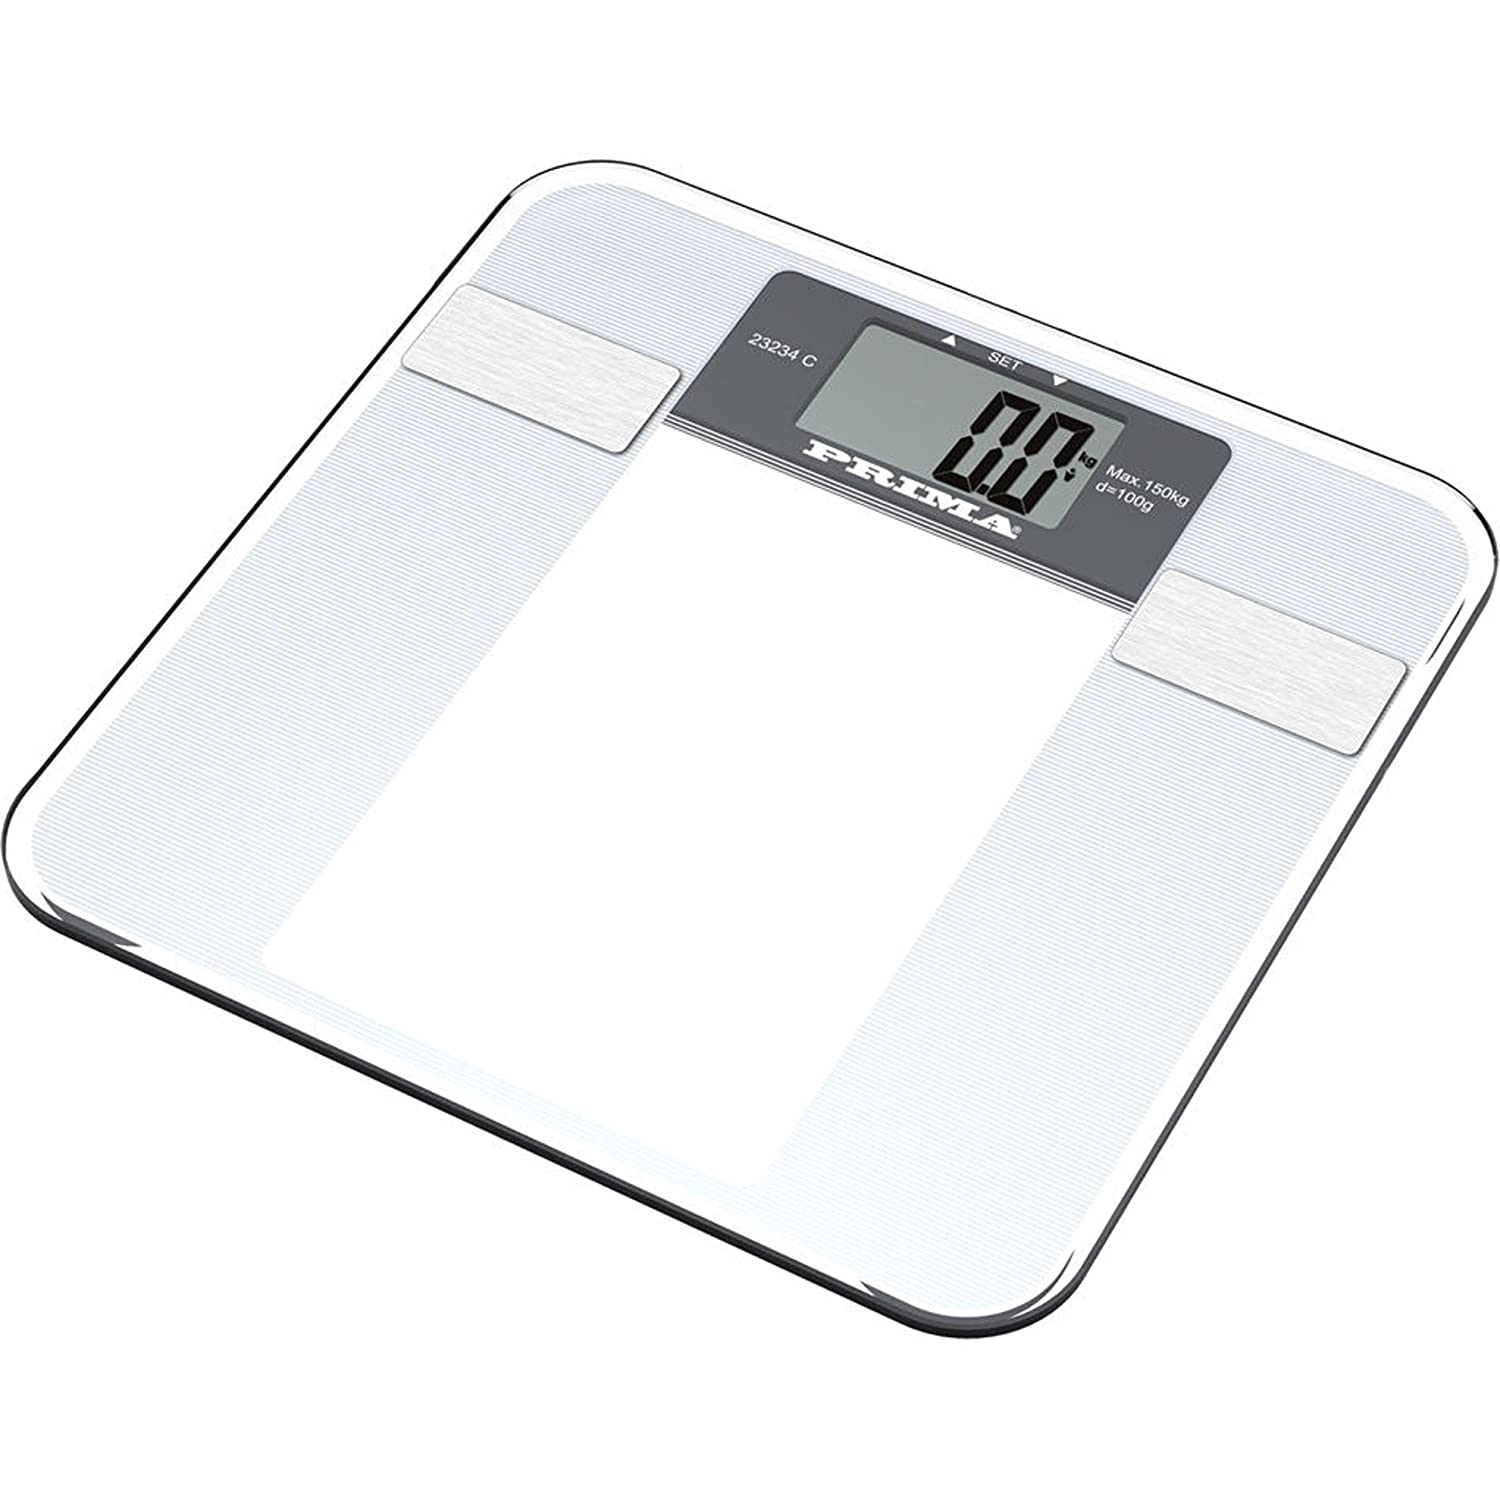 BATHROOM SCALE WEIGHING BODY FAT WEIGHT ELECTRONIC HOME LOSE DIAL MECHANICAL NEW (150KG 6 IN 1 MEASURES FAT)